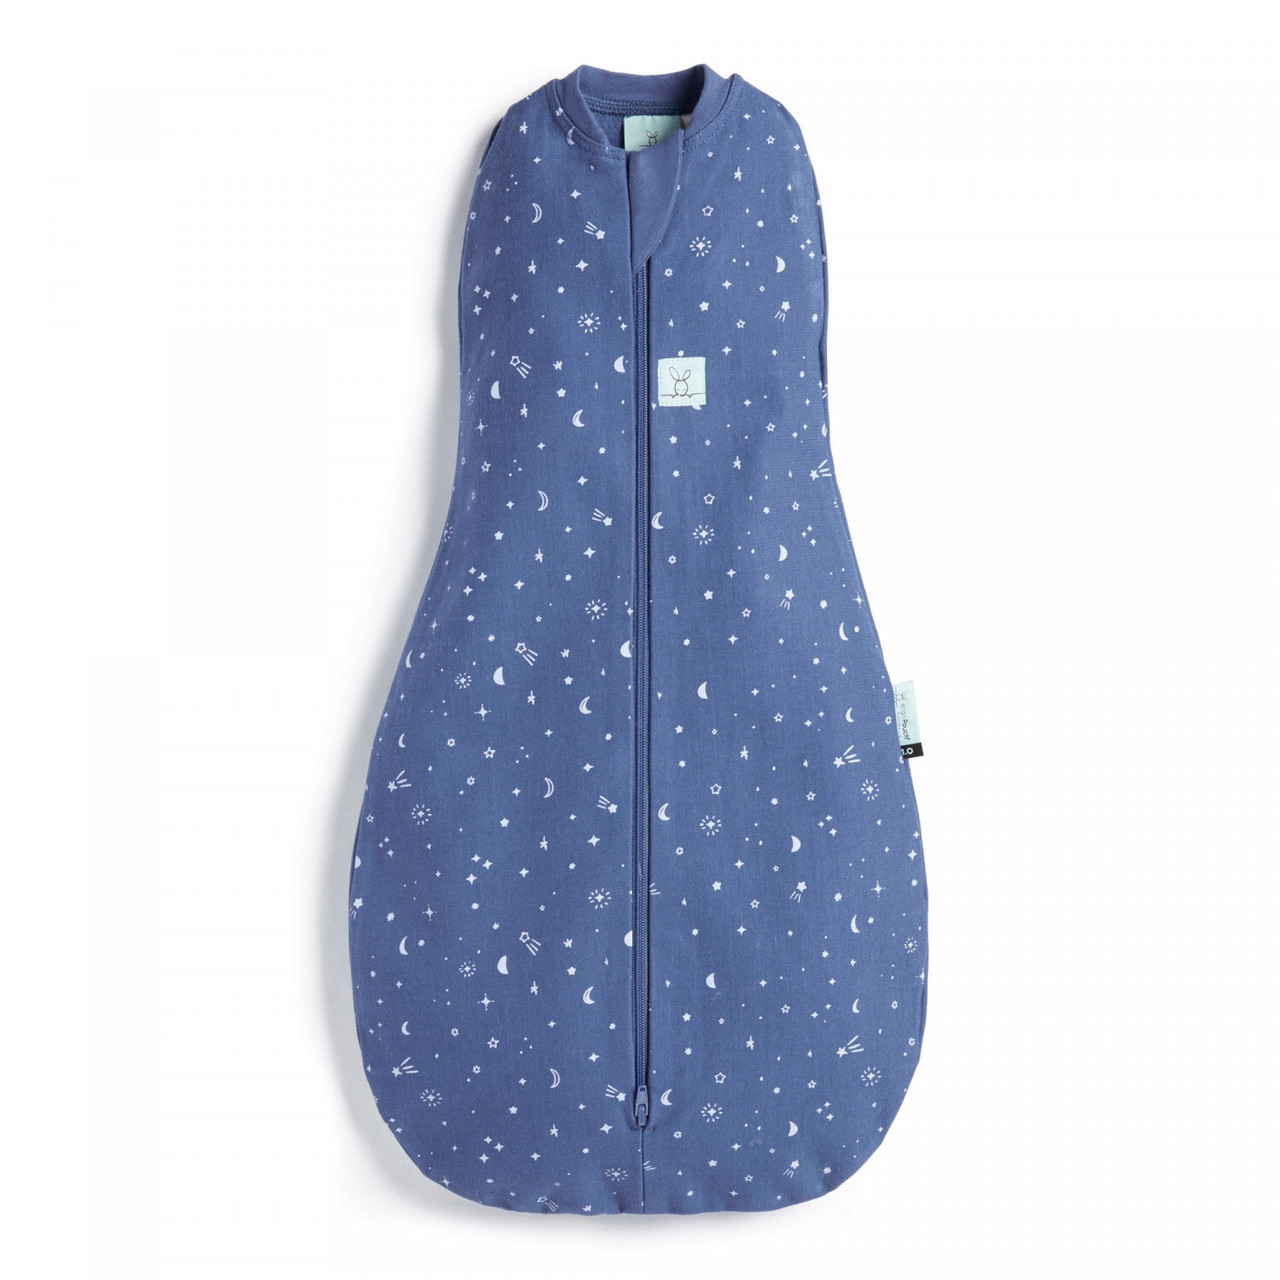 Ergopouch Cocoon Swaddle Bag 1.0 tog Preemie 0000M at Baby Barn Discounts